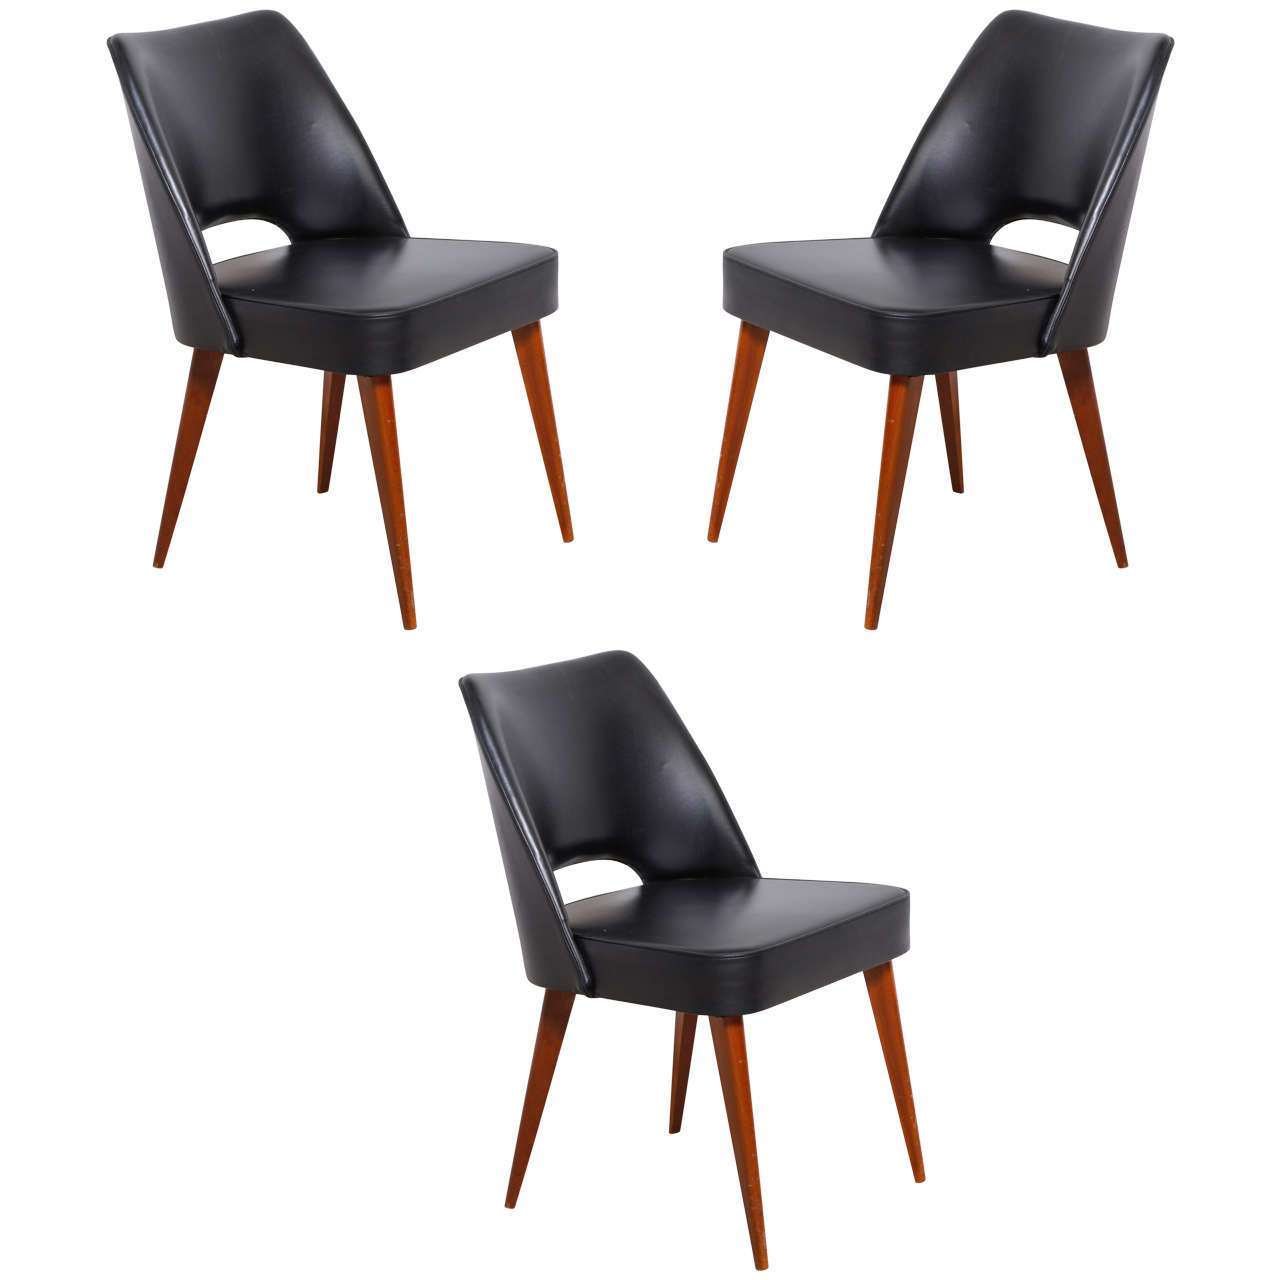 Thonet 1950s dining chairs at 1stdibs for Furniture 1950